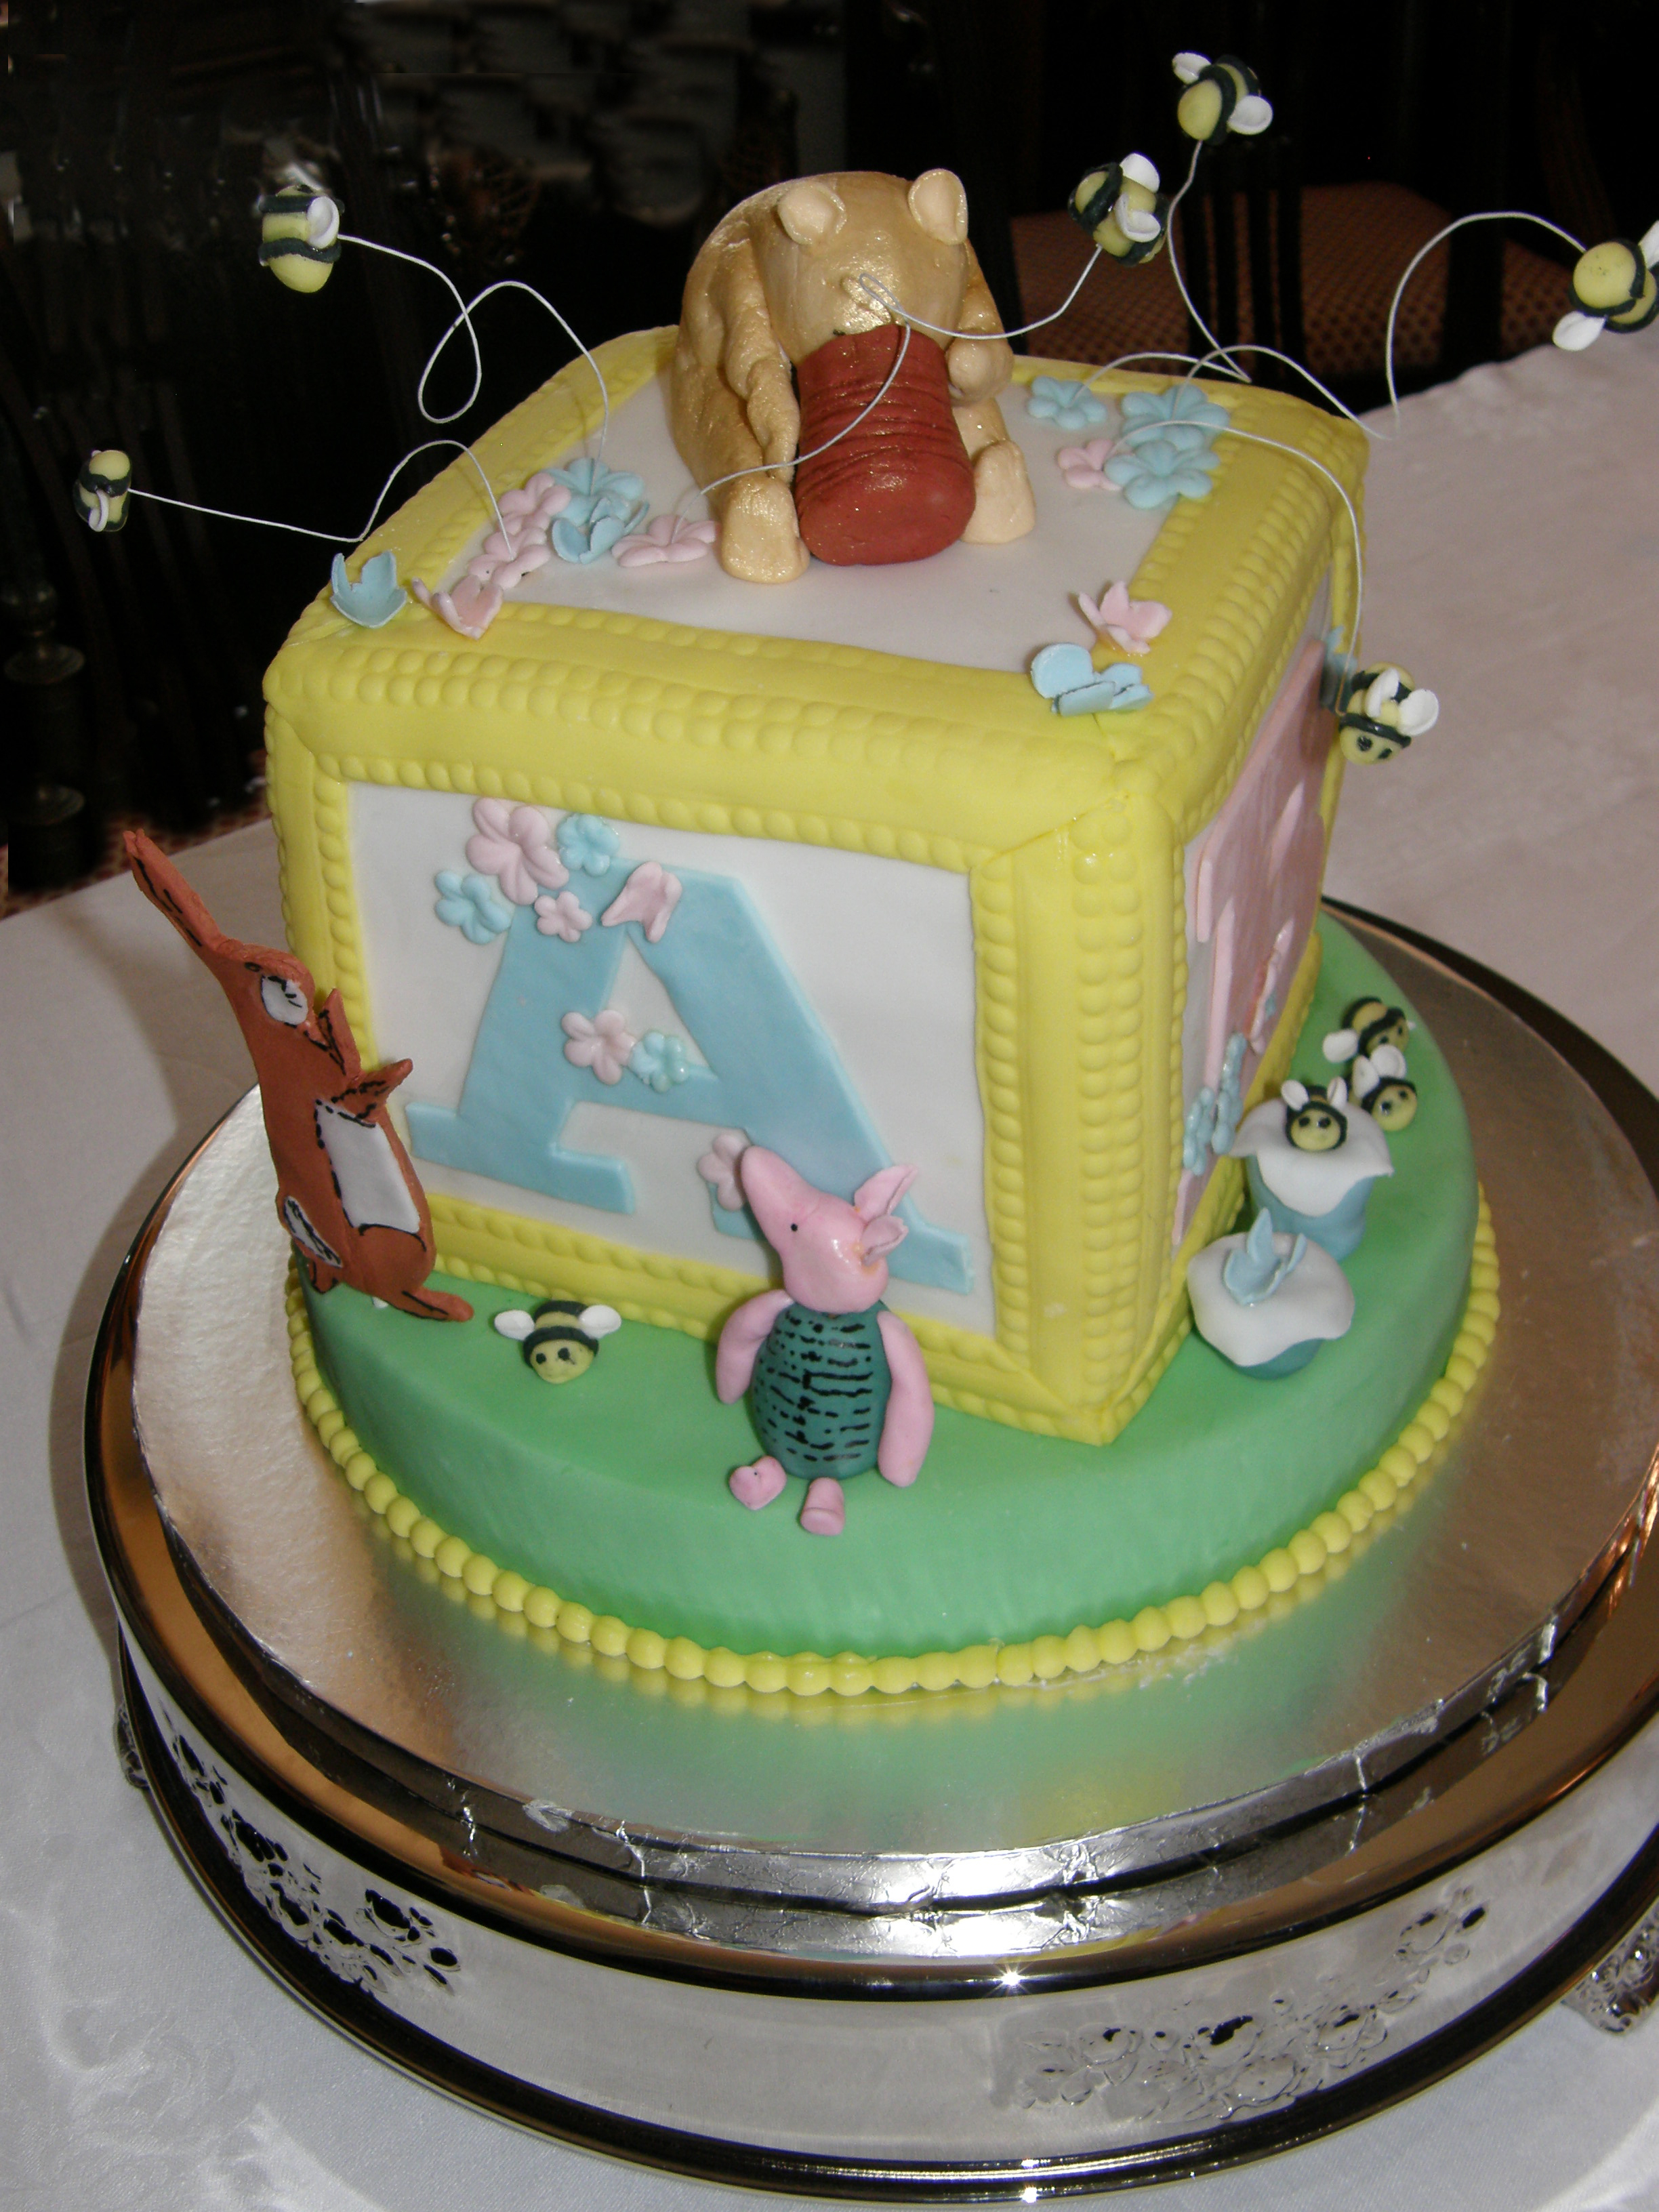 Amazing Cakescolby | Pittsburgh, Pa Celebration Cakes - Cakescolby throughout Winnie The Pooh Baby Shower Cakes